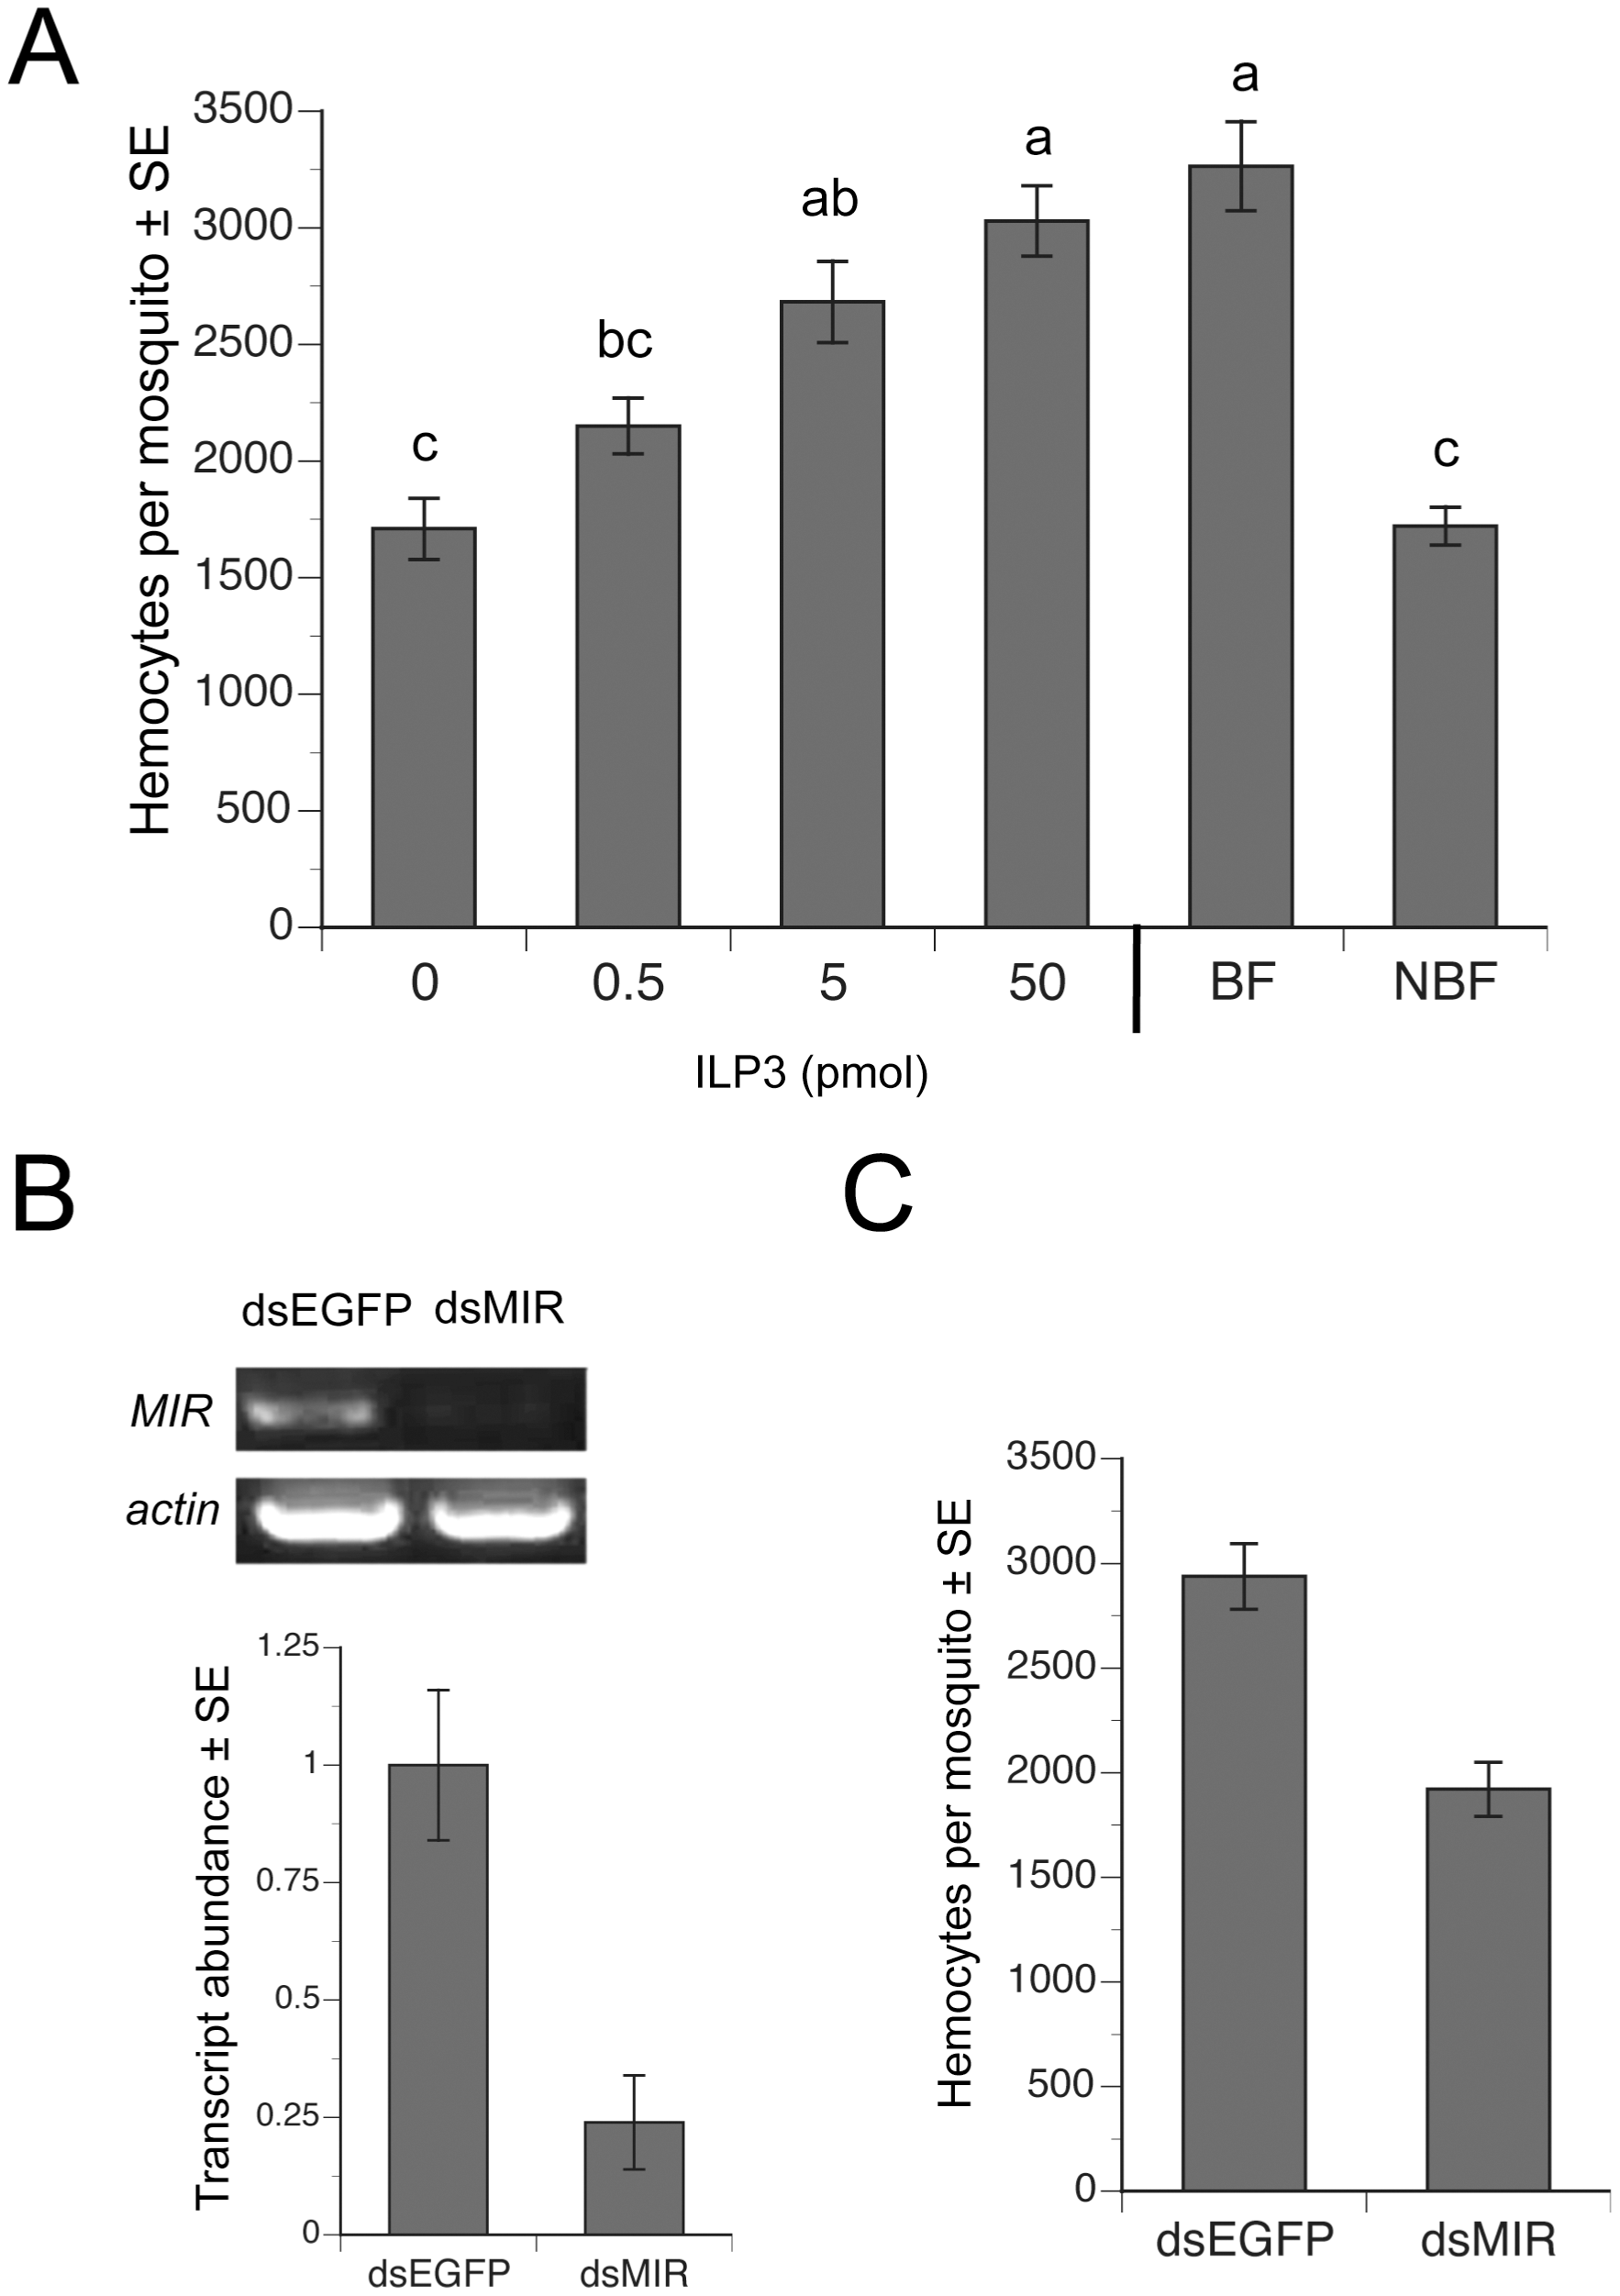 ILP3 dose-dependently rescues hemocyte abundance after decapitation while dsMIR treatment reduces hemocyte abundance.